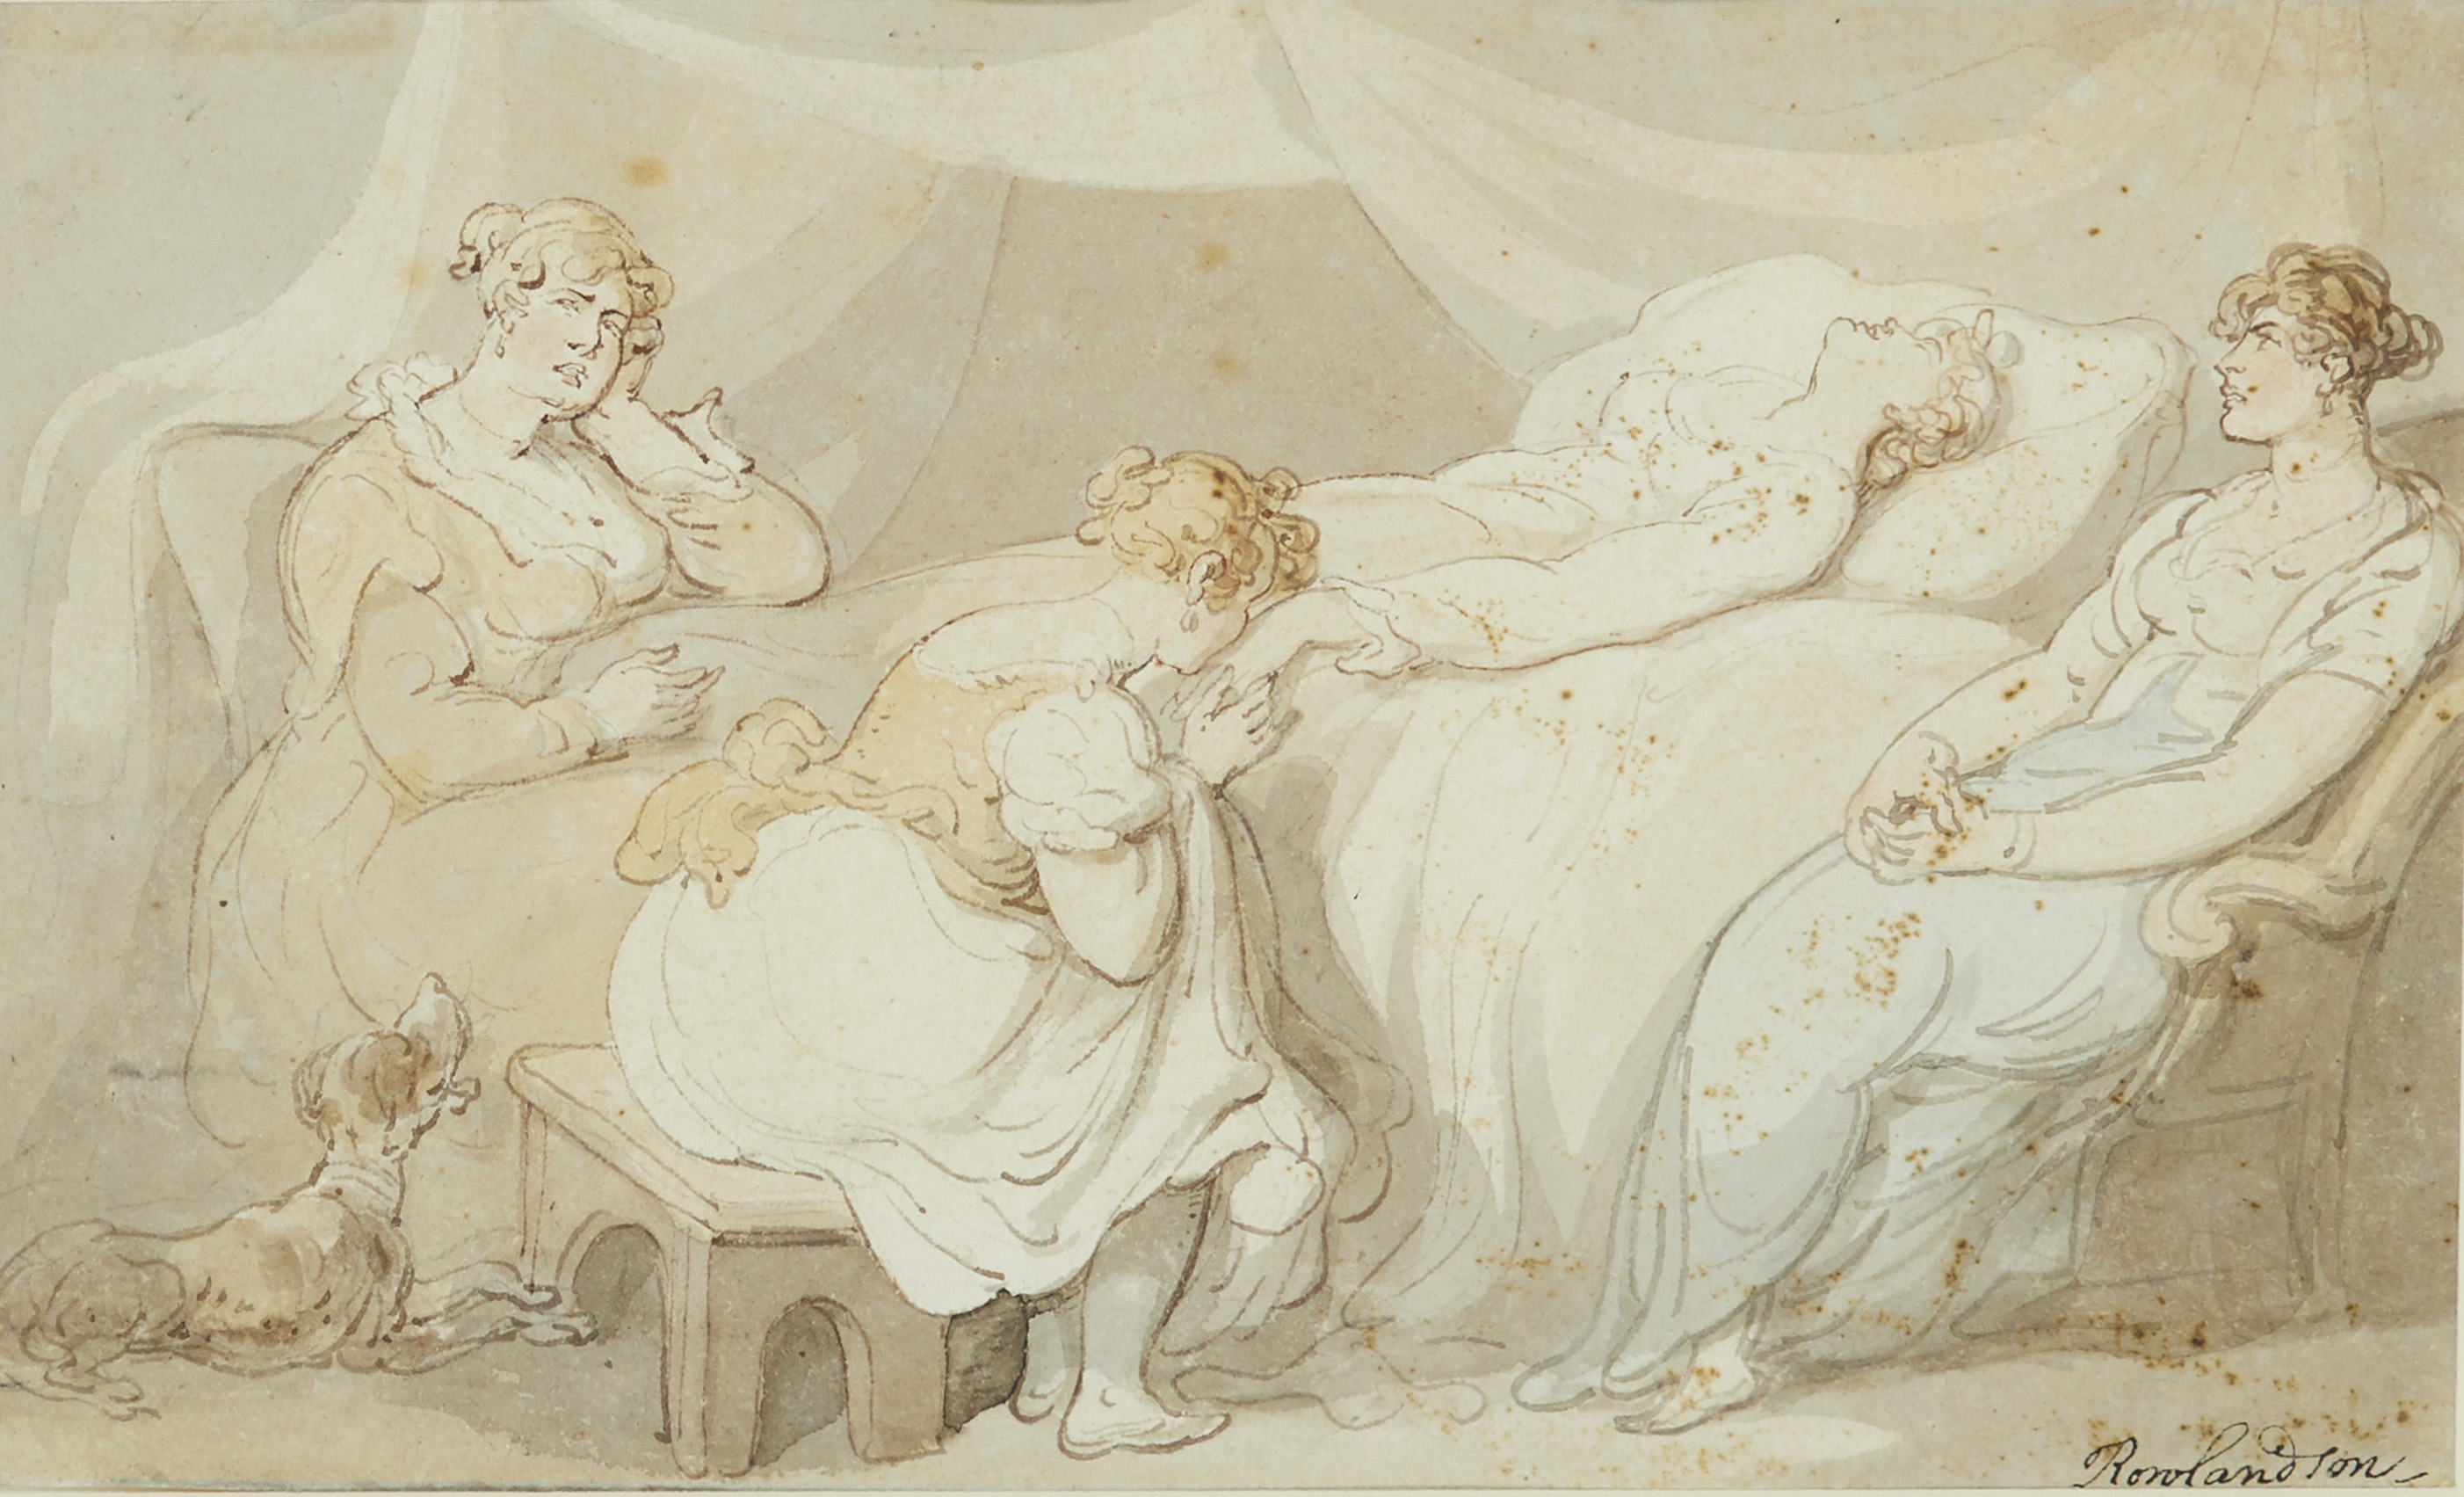 Lot 173 - Thomas Rowlandson, British 1756-1827- On her death bed; pen and brown ink and watercolour, signed,